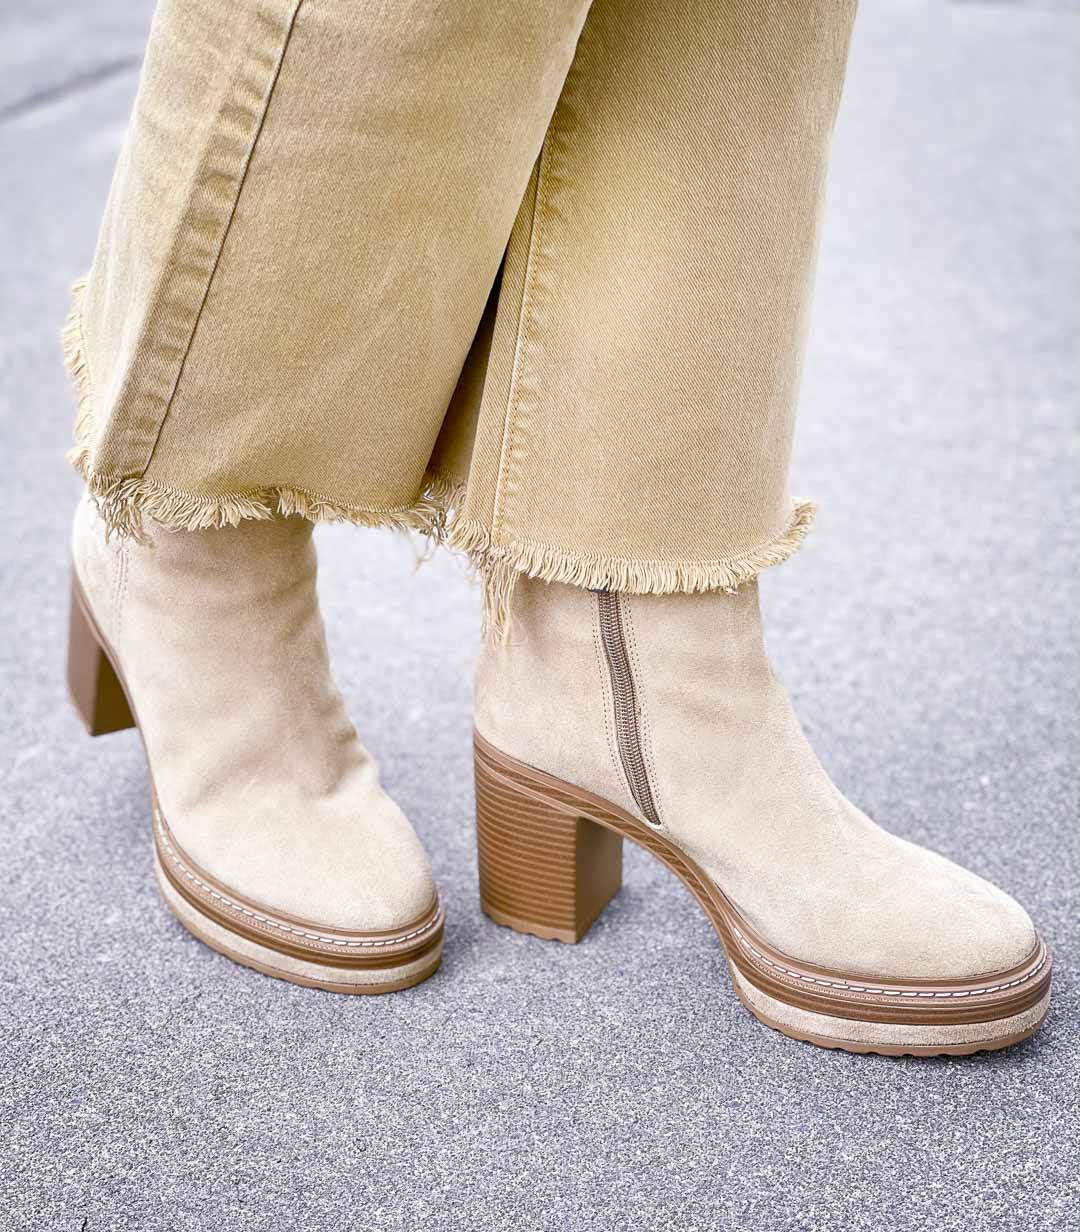 Over 40 Fashion Blogger, Tania Stephens is wearing platform boots